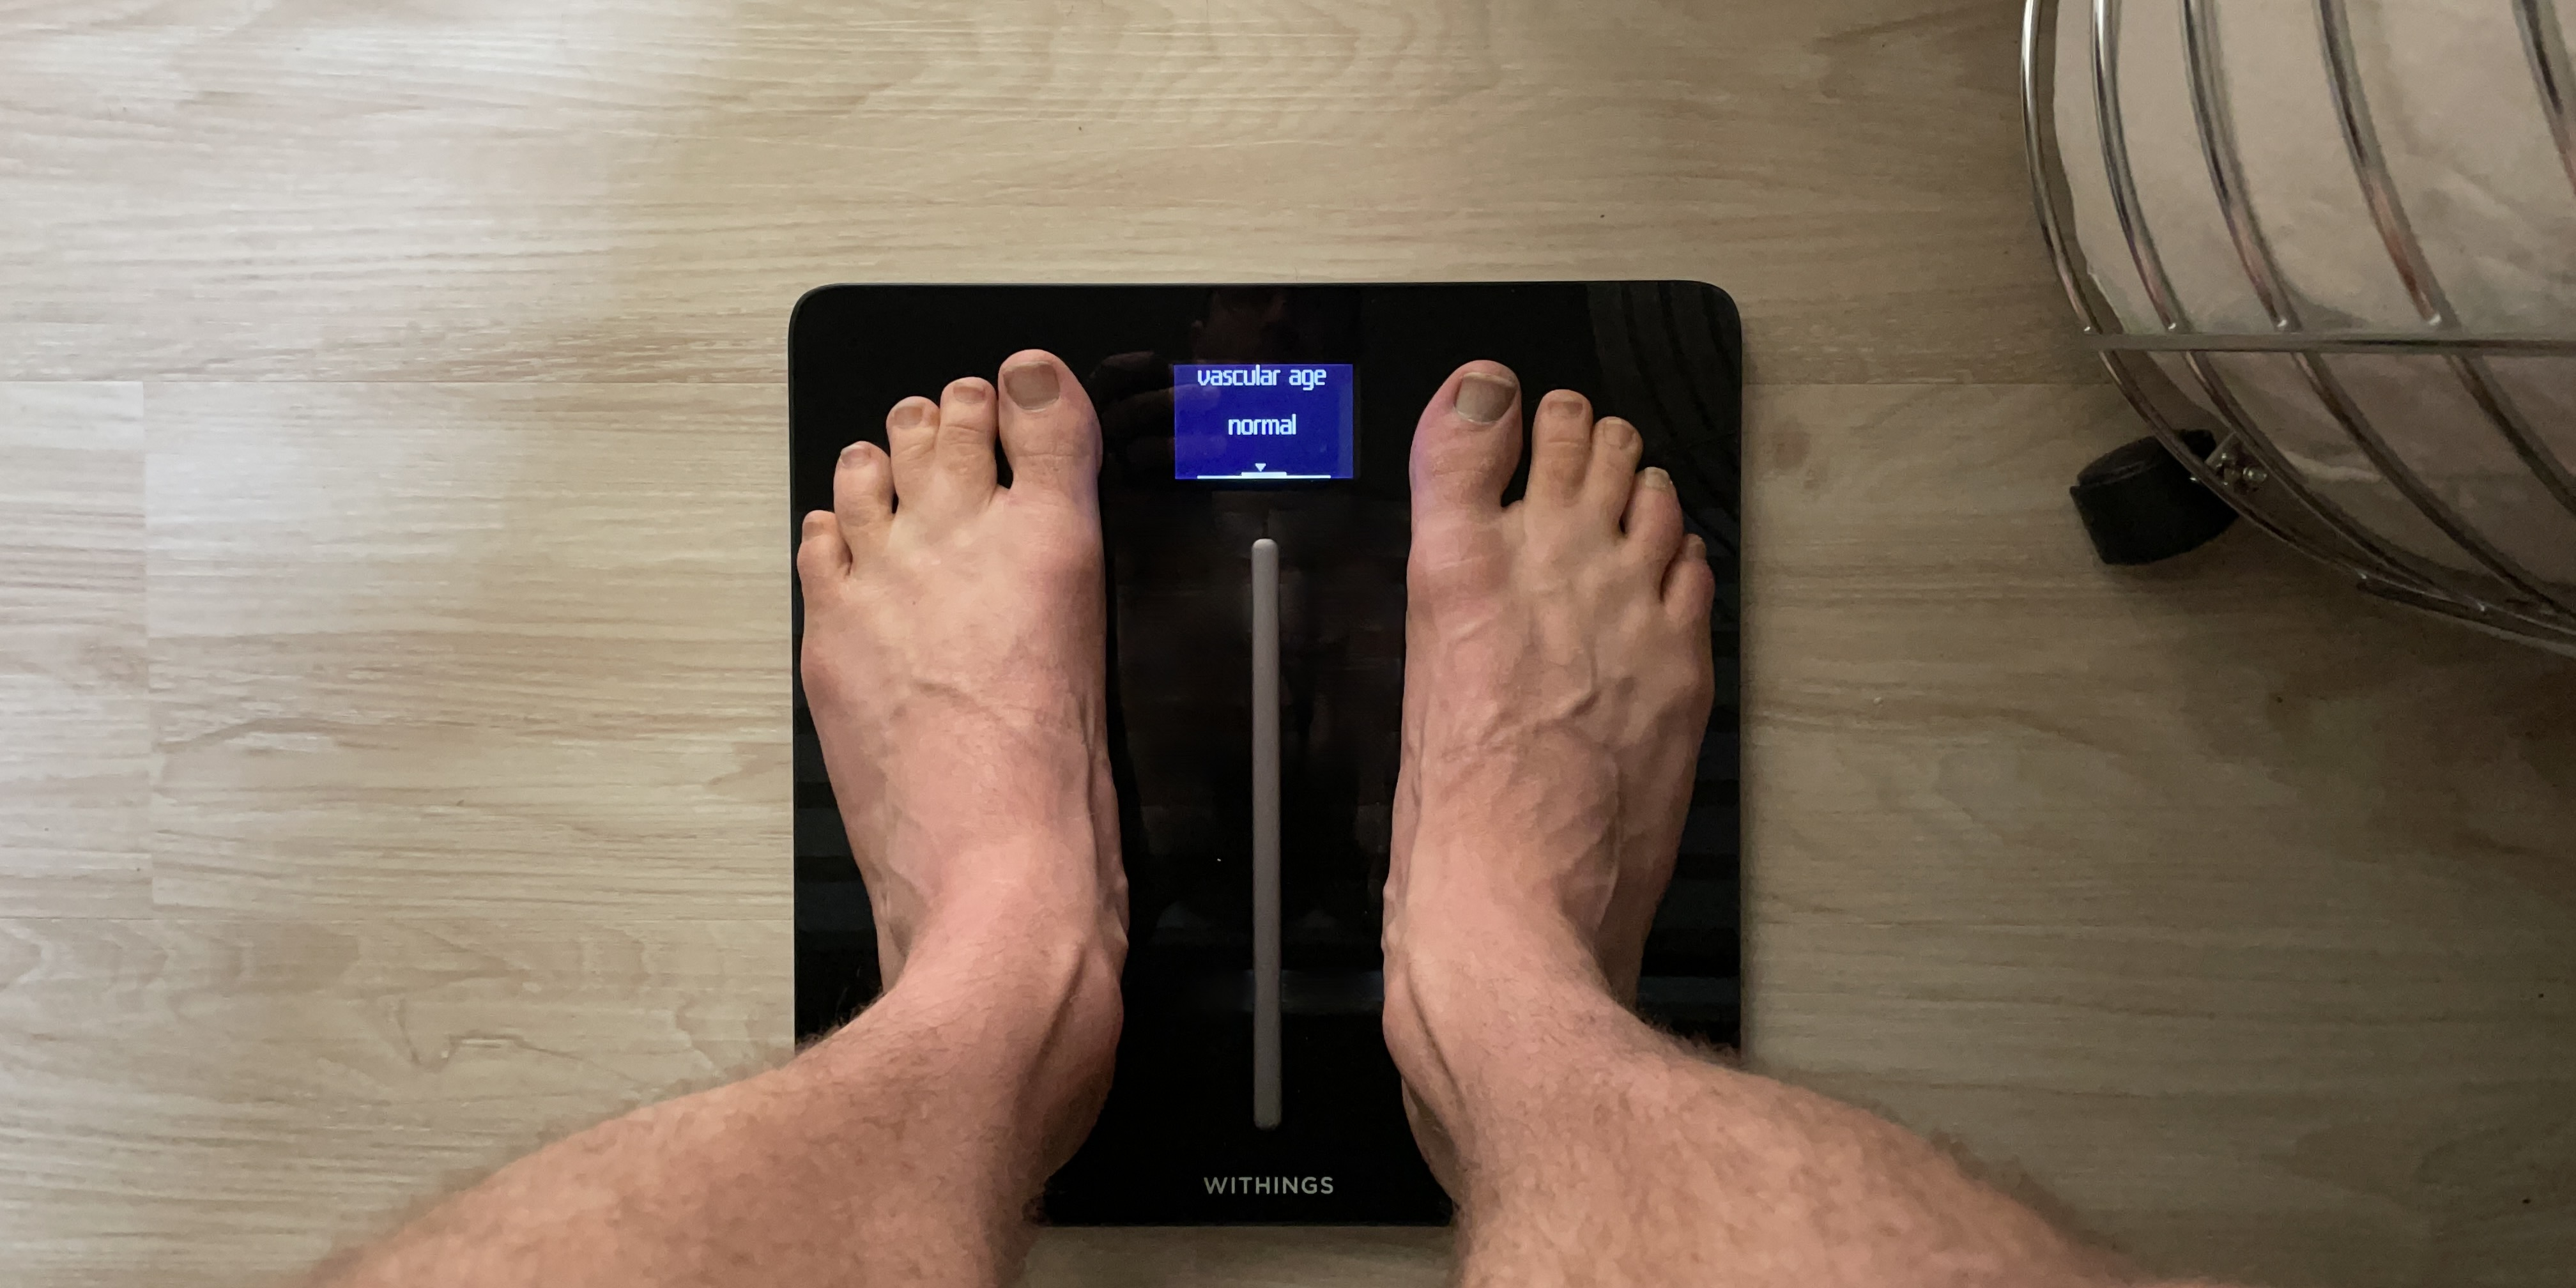 Withings Body Cardio Vascular Age measurement in use